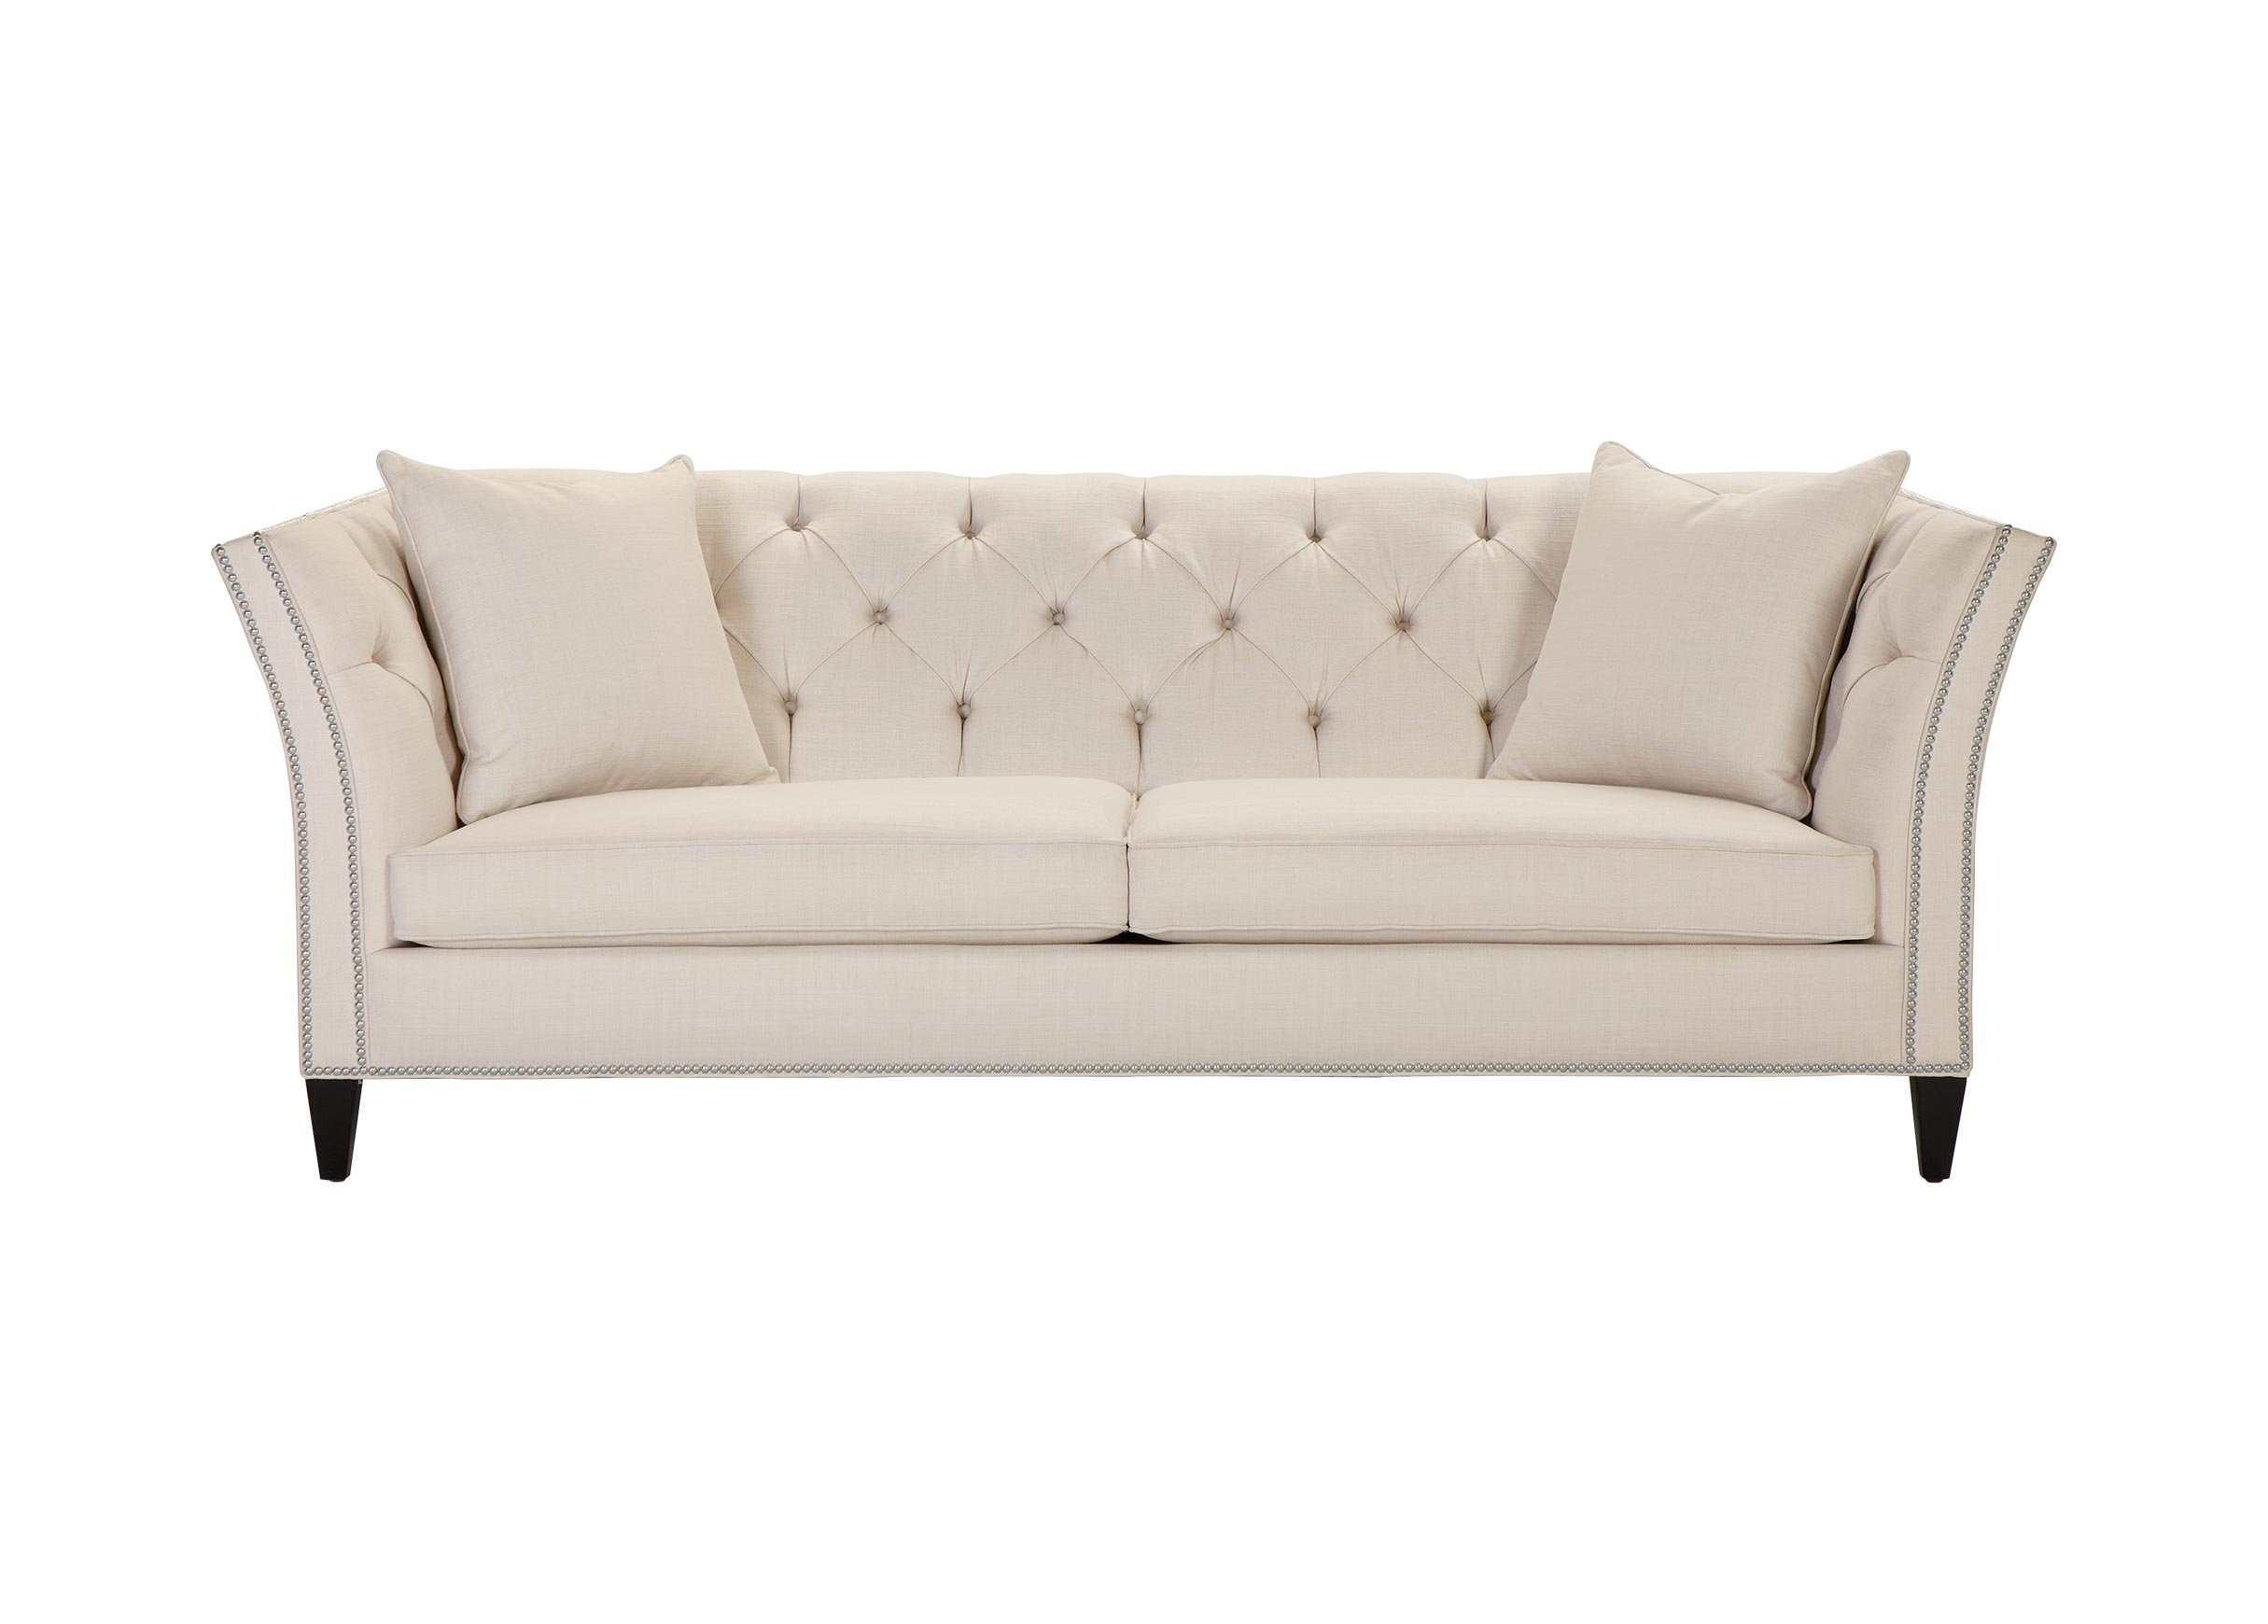 Shelton sofa sofas loveseats ethan allen for Couch und sofa